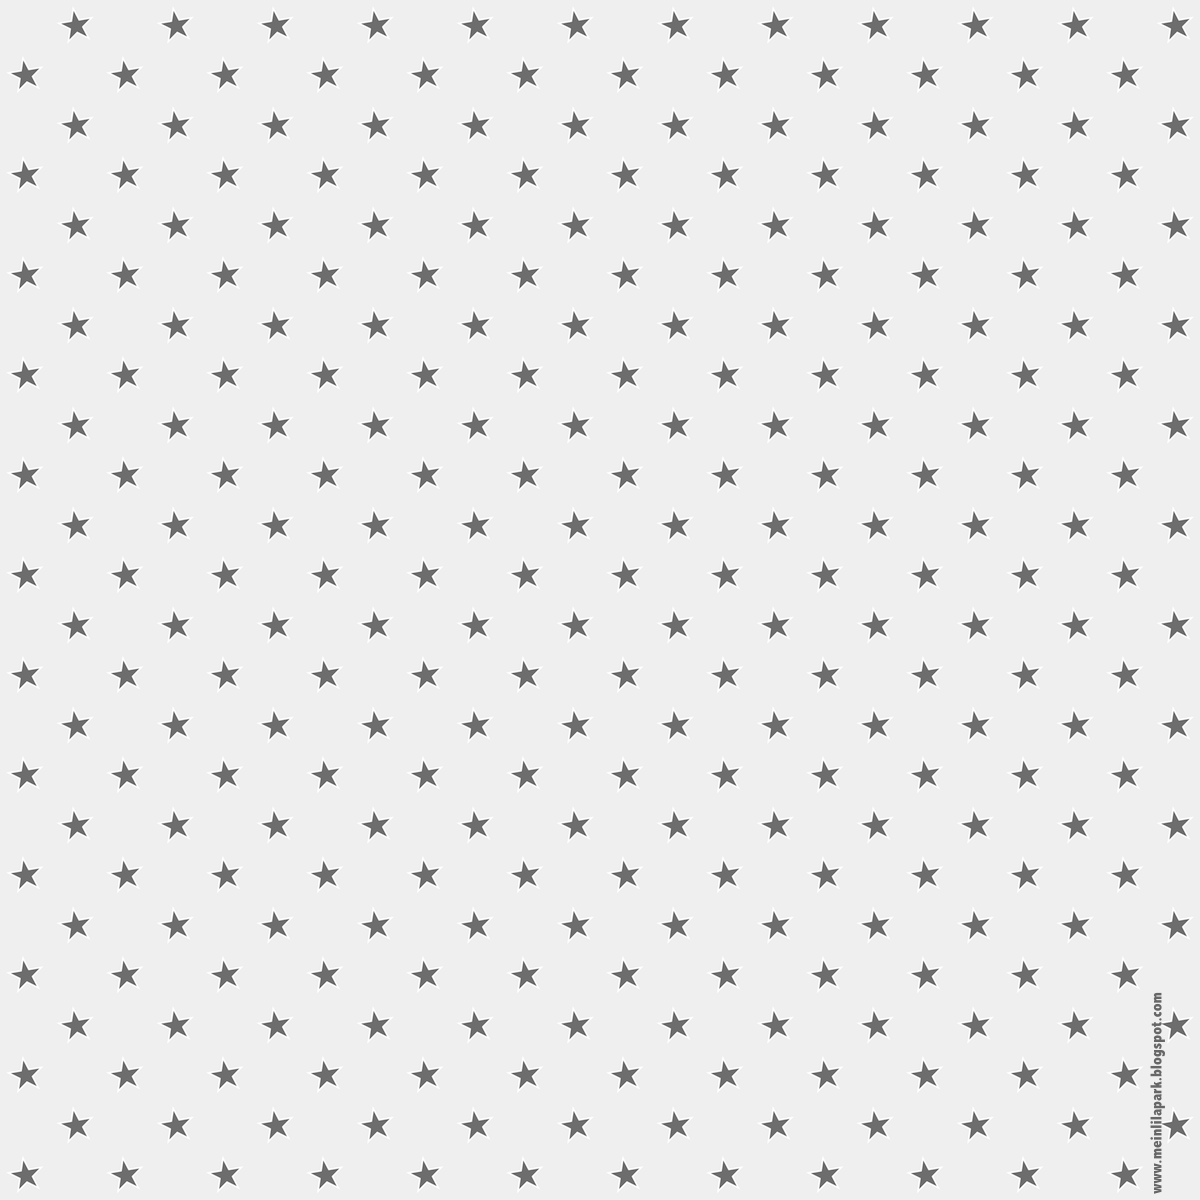 Meinlilapark – Diy Printables And Downloads: Free Printable Gift - Free Printable Wrapping Paper Patterns